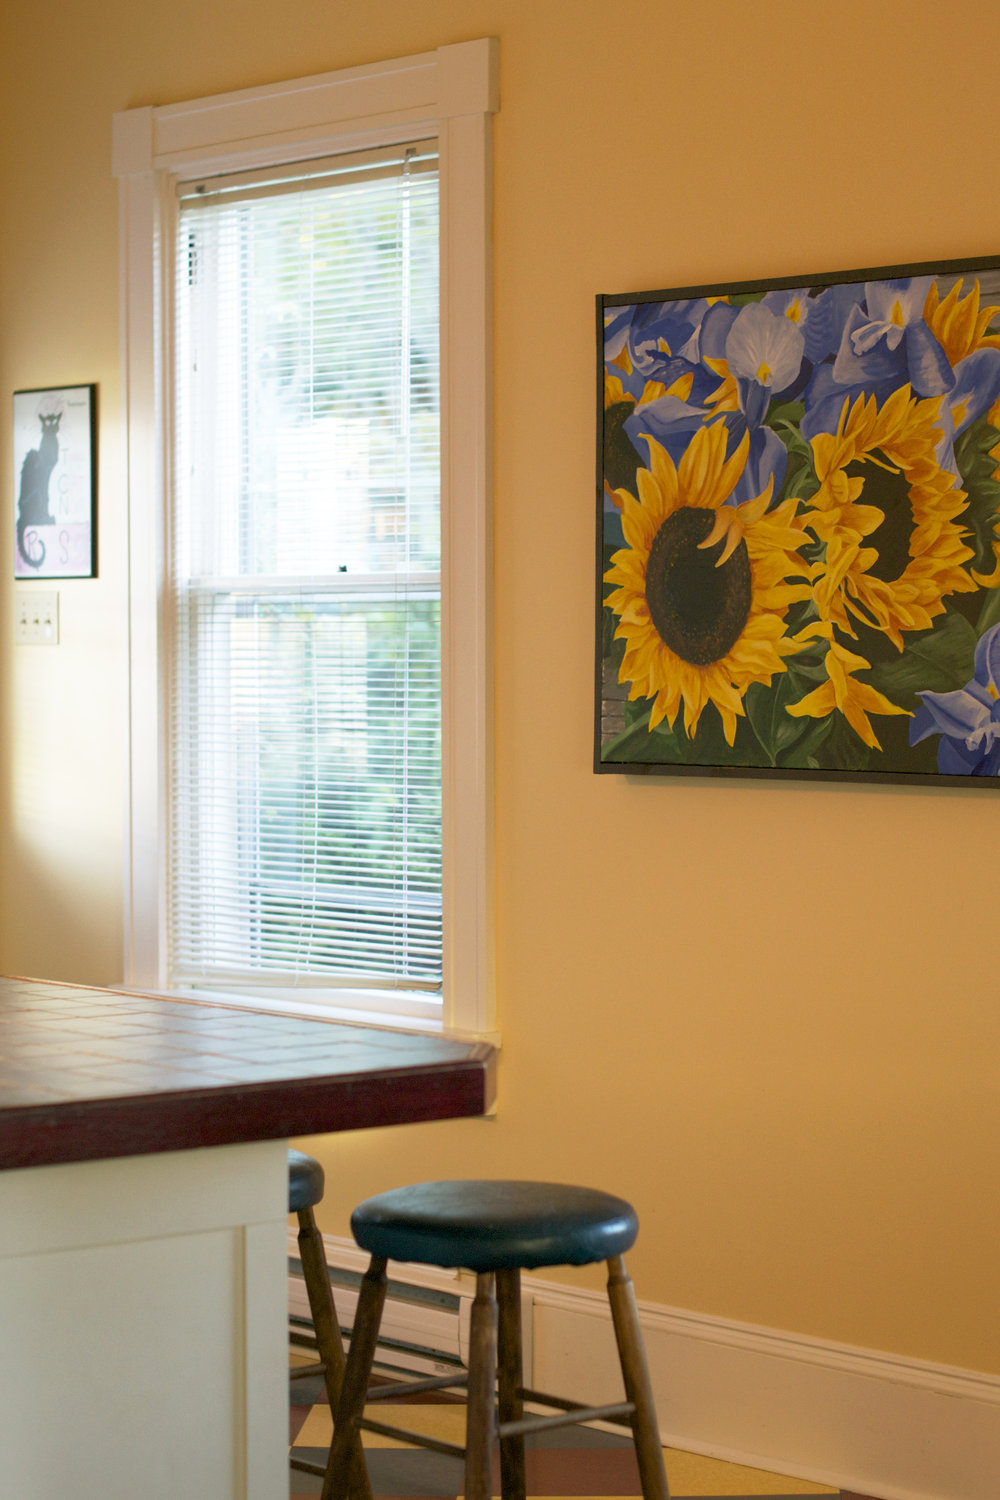 sunflower-painting-window.jpg